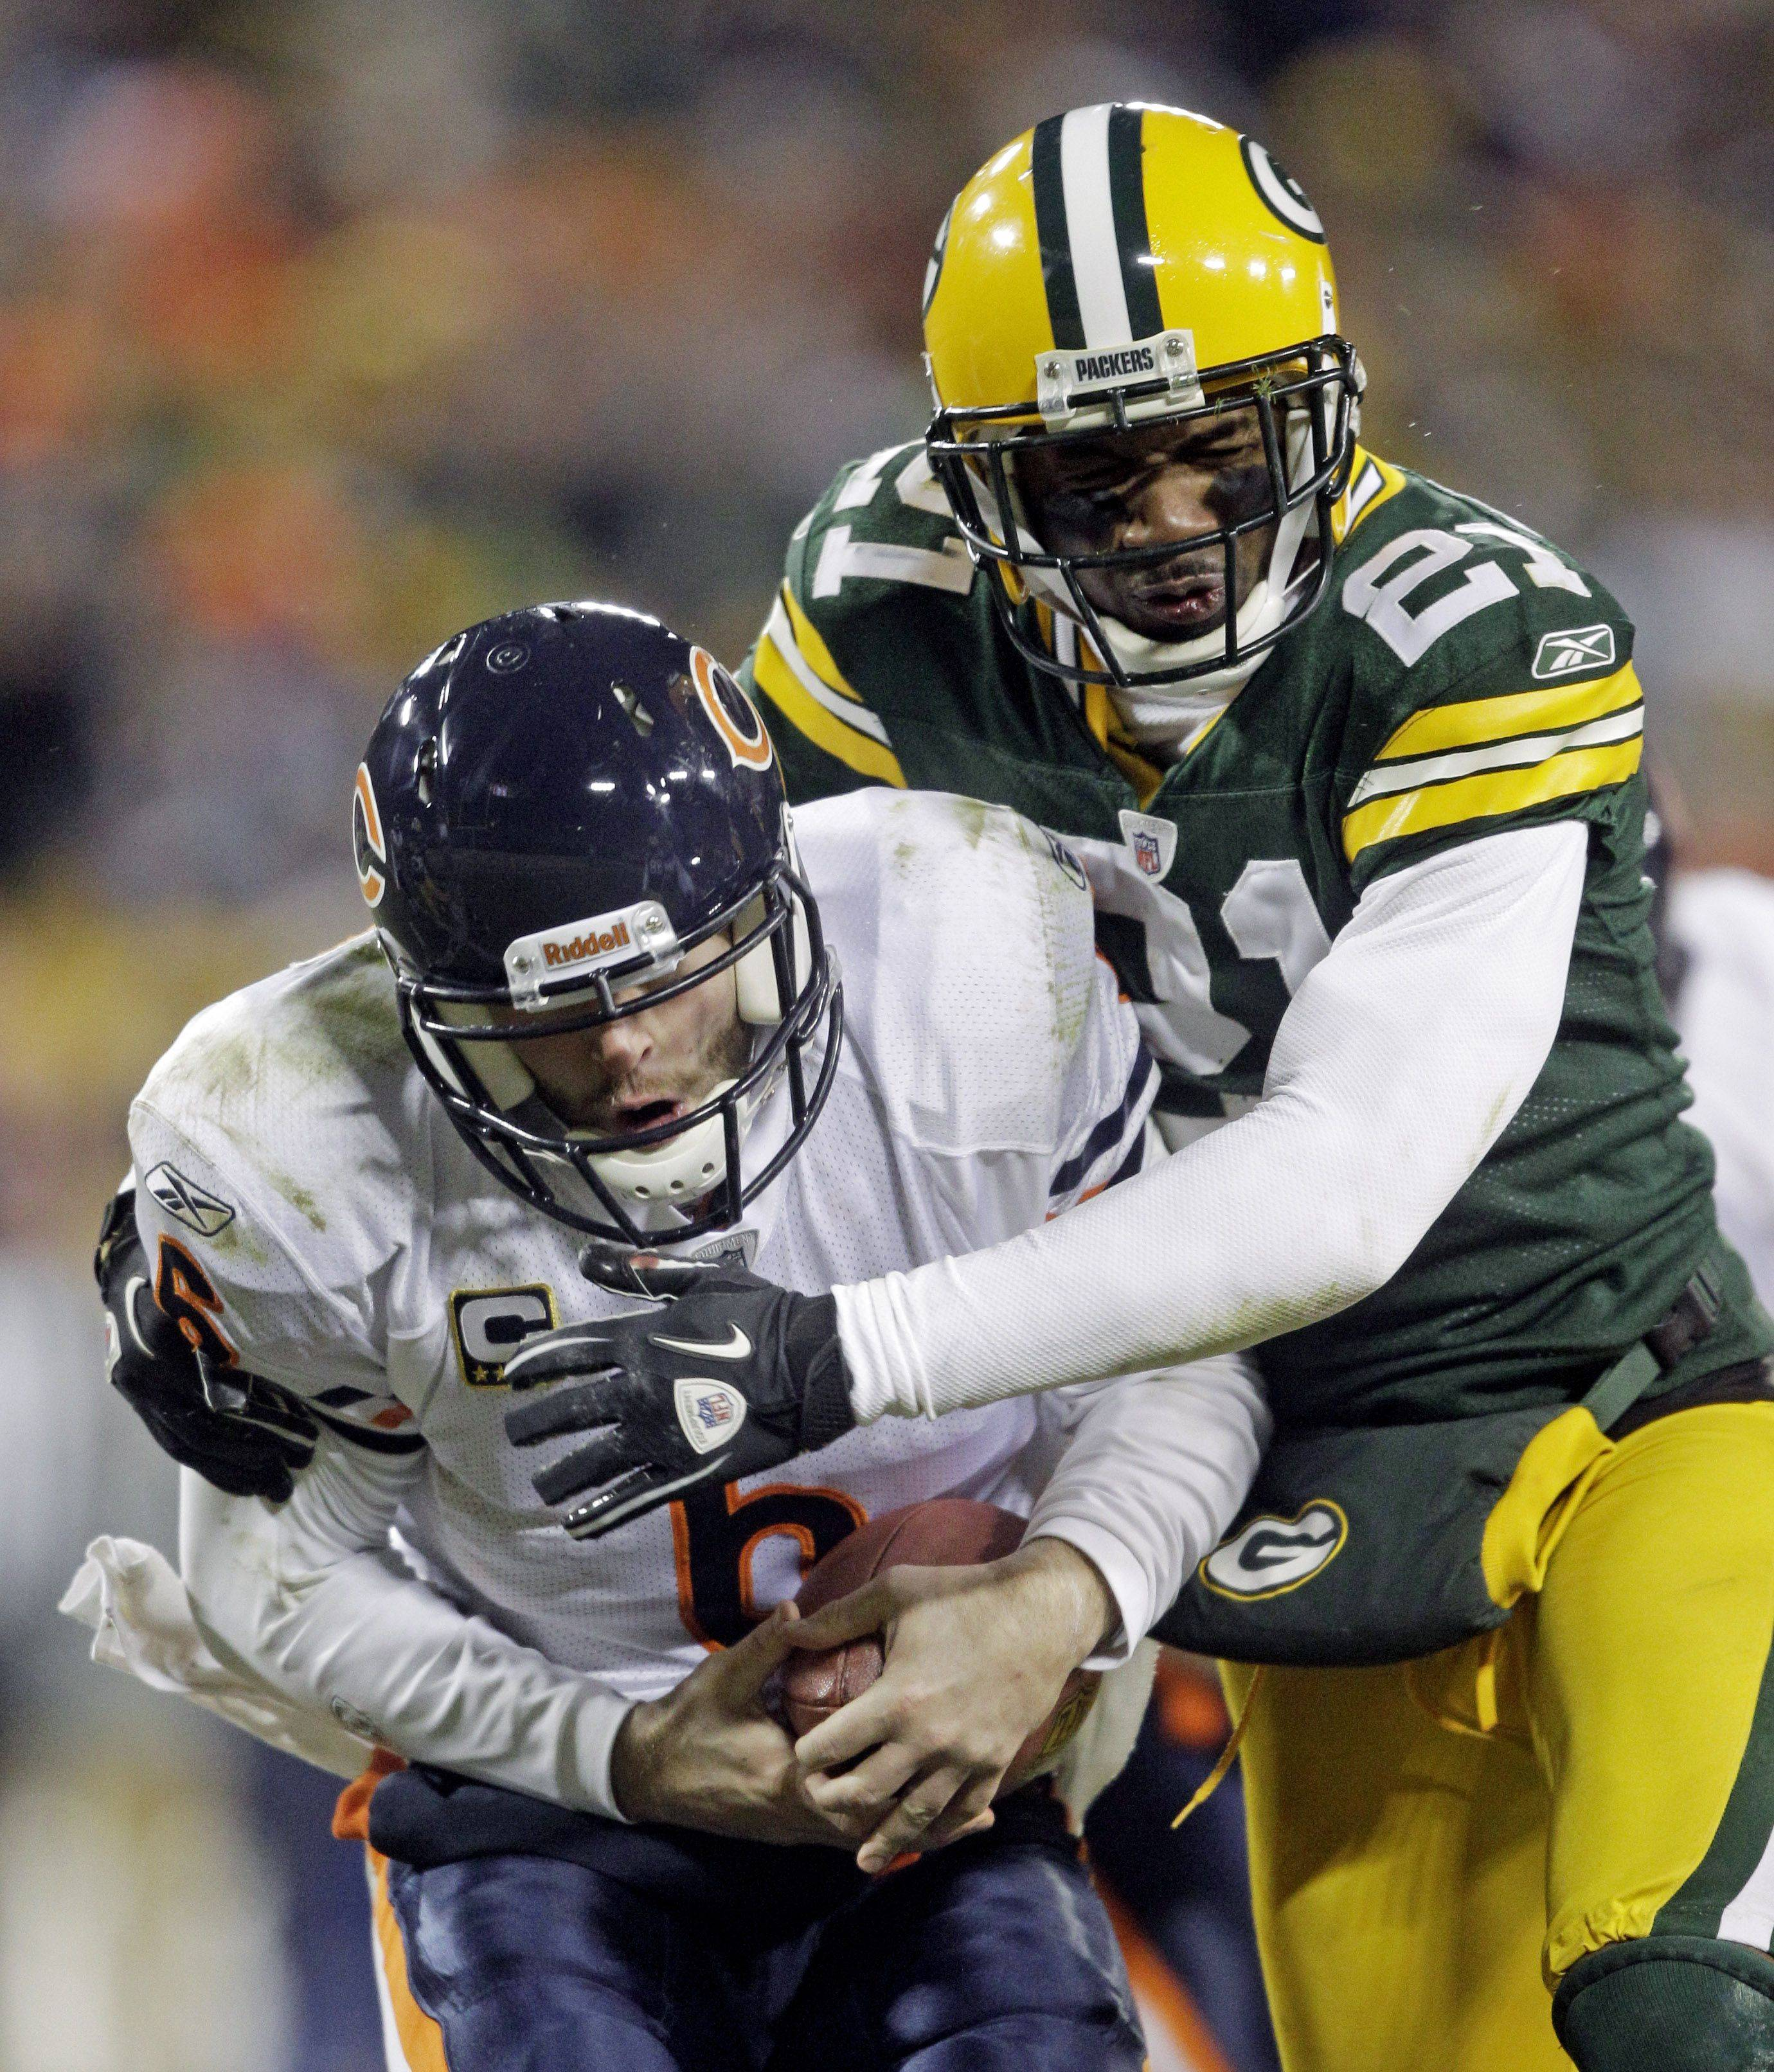 Green Bay Packers' Charles Woodson sacks Chicago Bears quarterback Jay Cutler (6) during the second half of an NFL football game Sunday, Jan. 2, 2011, in Green Bay, Wis. .The Packers won 10-3.